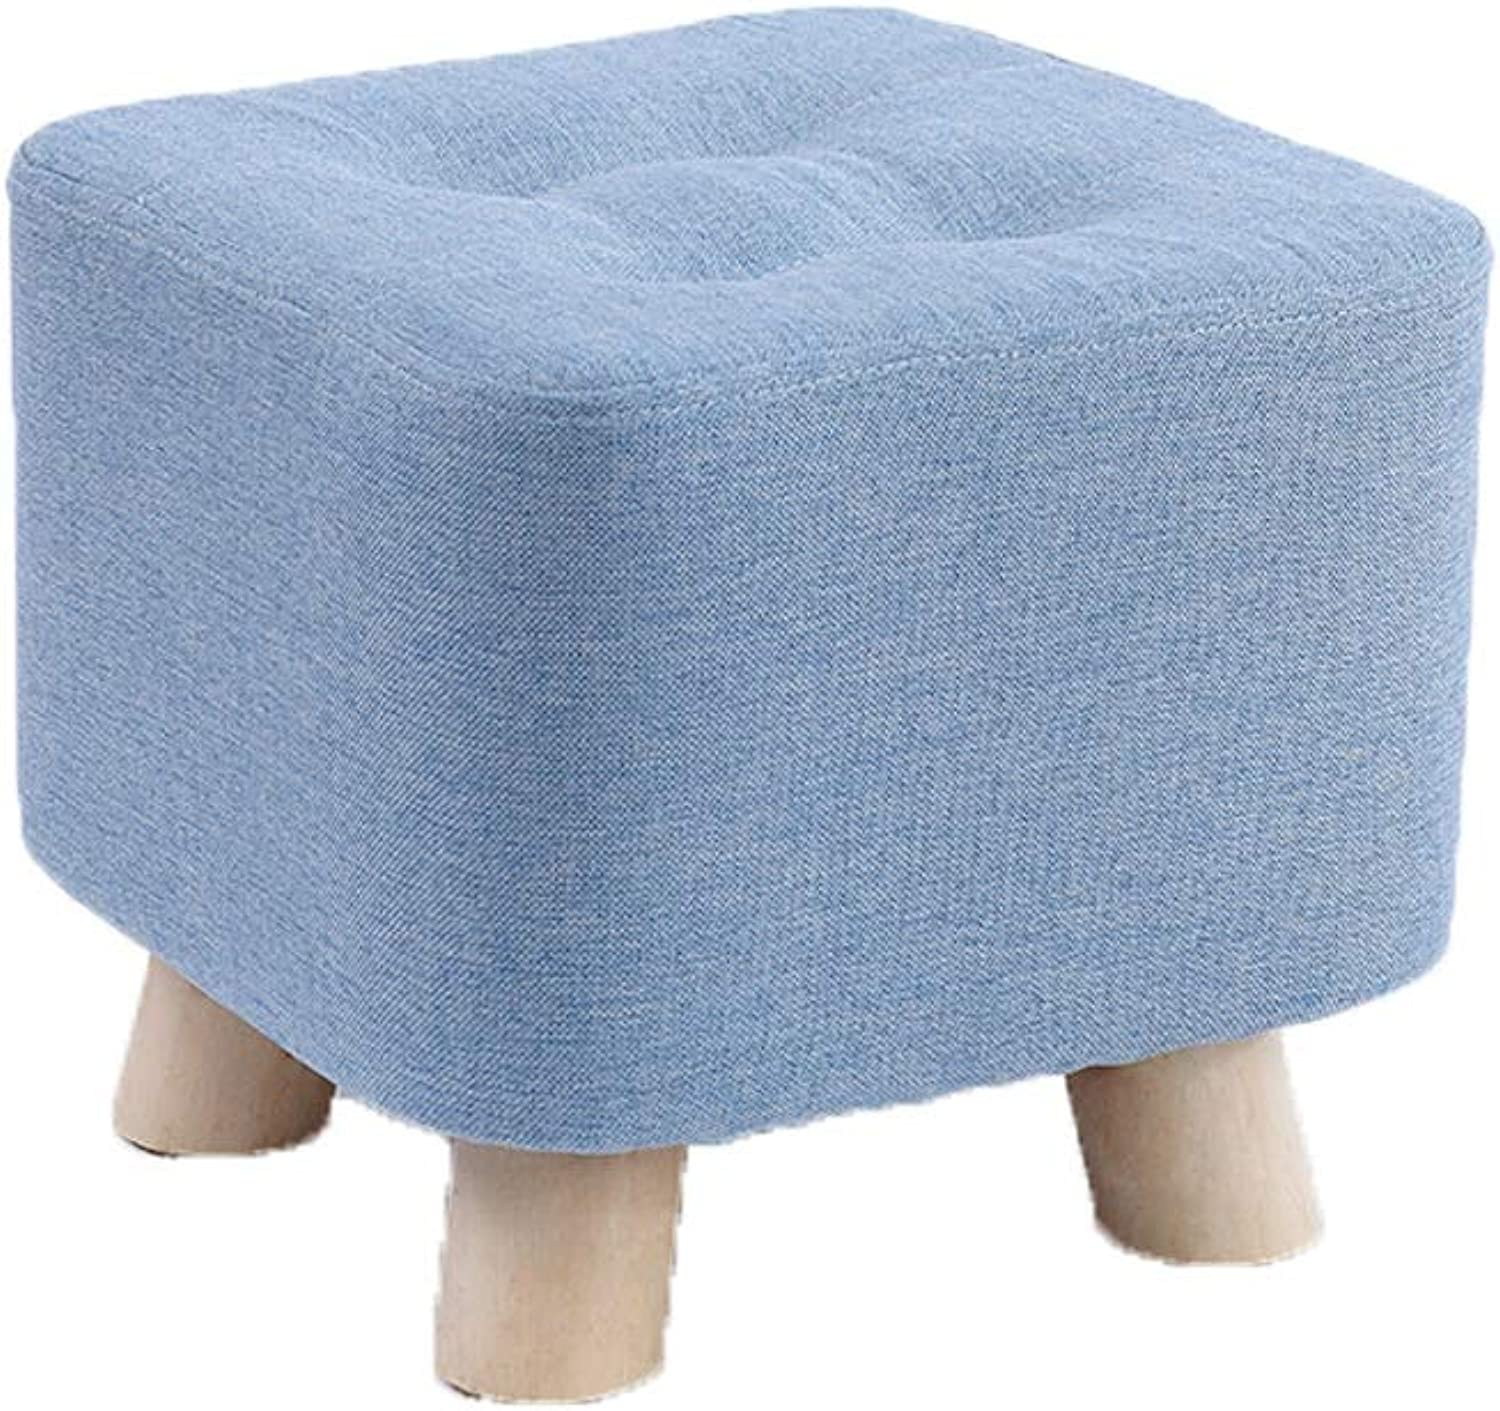 Wapipey Nordic Modern Small Stool Fashion Home Adult Sofa Square Stool Fabric Living Room Coffee Table Low Stool Block Solid Wood Creative Small Bench Size 28  28  26CM (color   bluee)